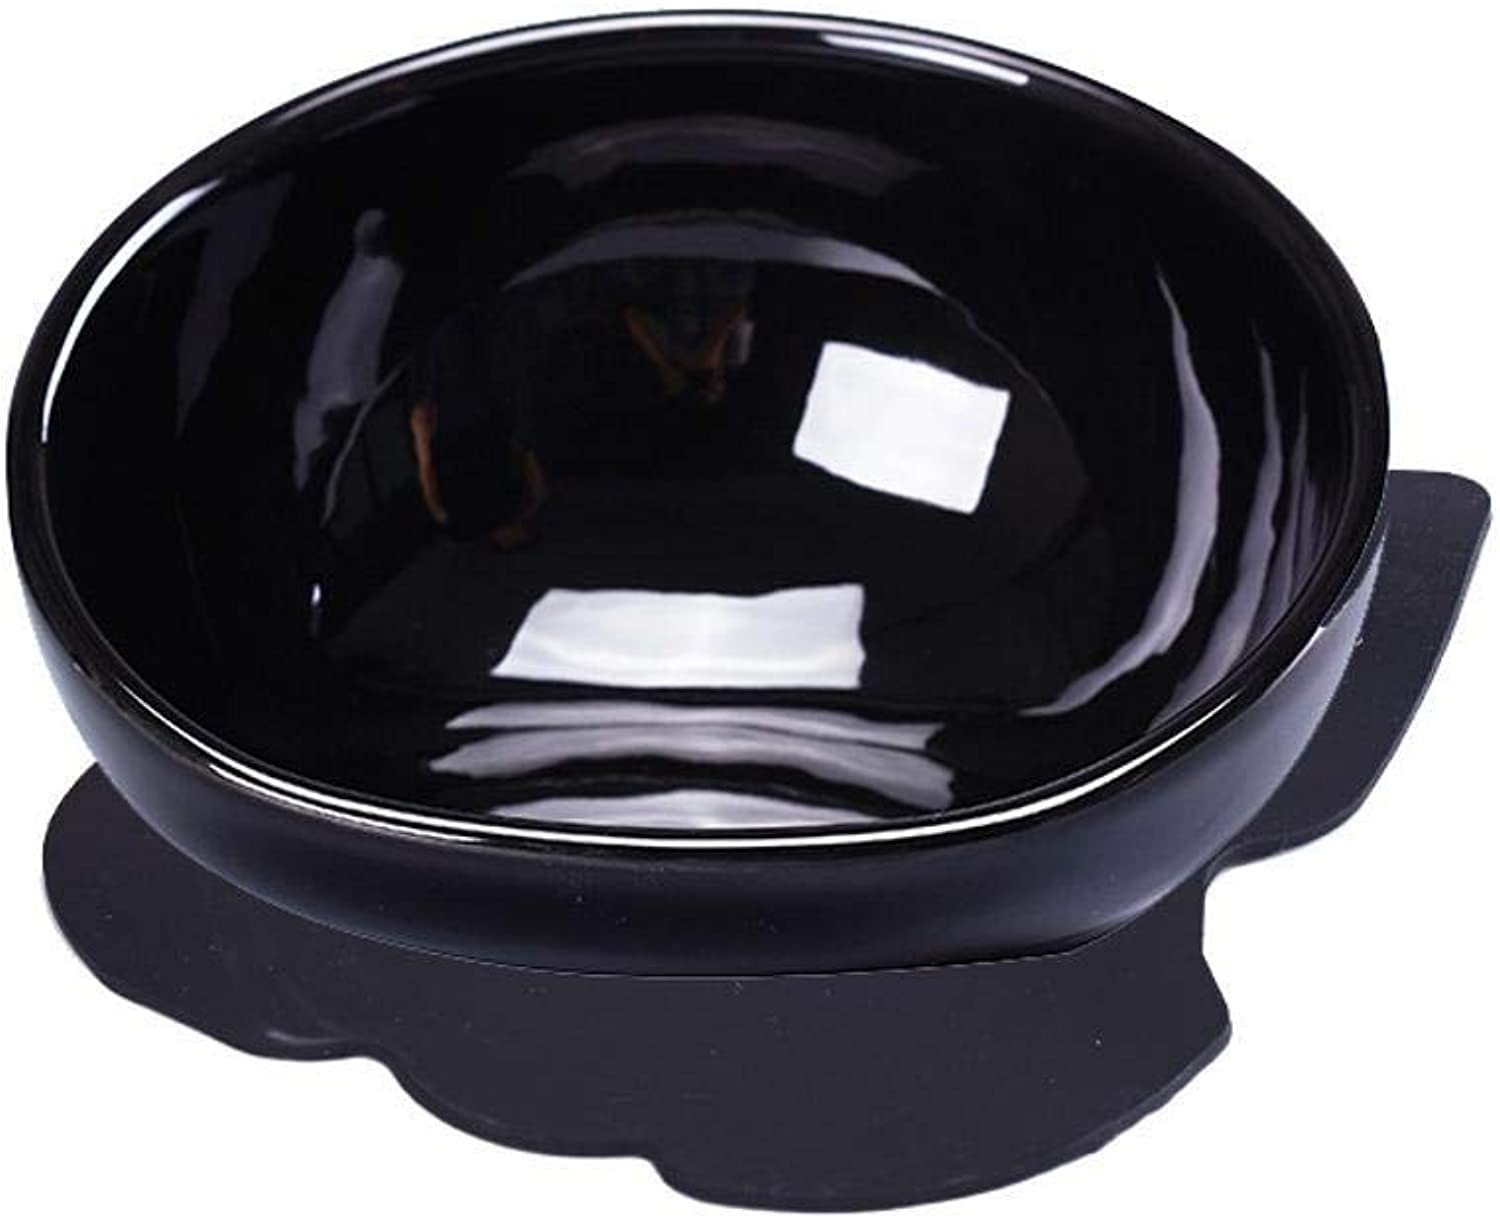 Dixinla Pet food bowl Pet tableware black on glazed porcelain bowl Bulldog Bowl Cat Bowl pet food Bowl